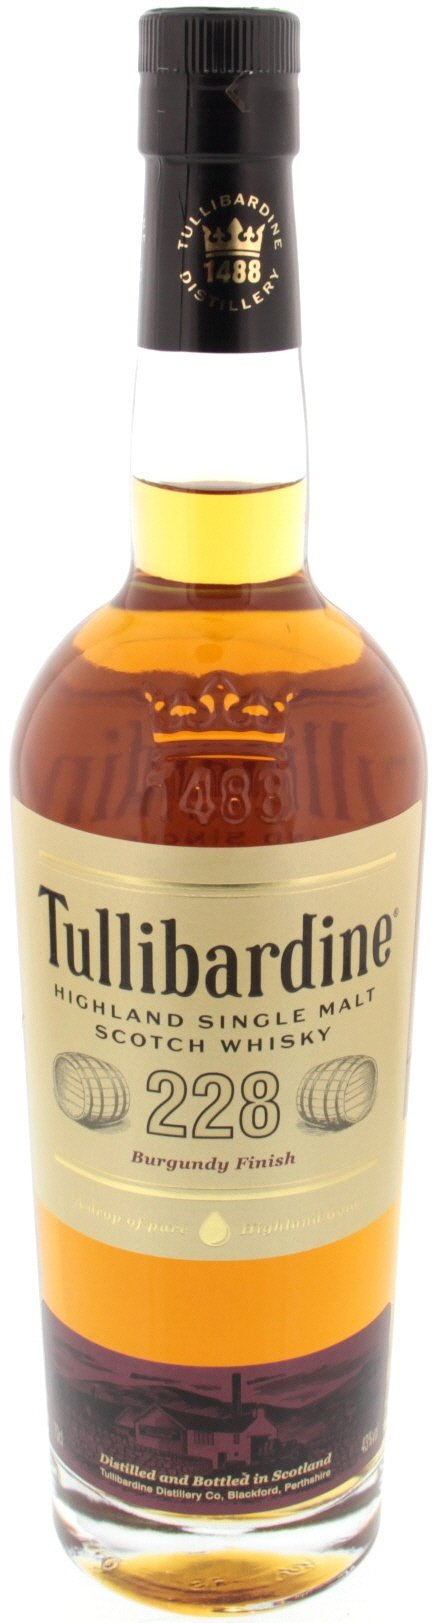 Tullibardine Single Malt Scotch Whisky 228